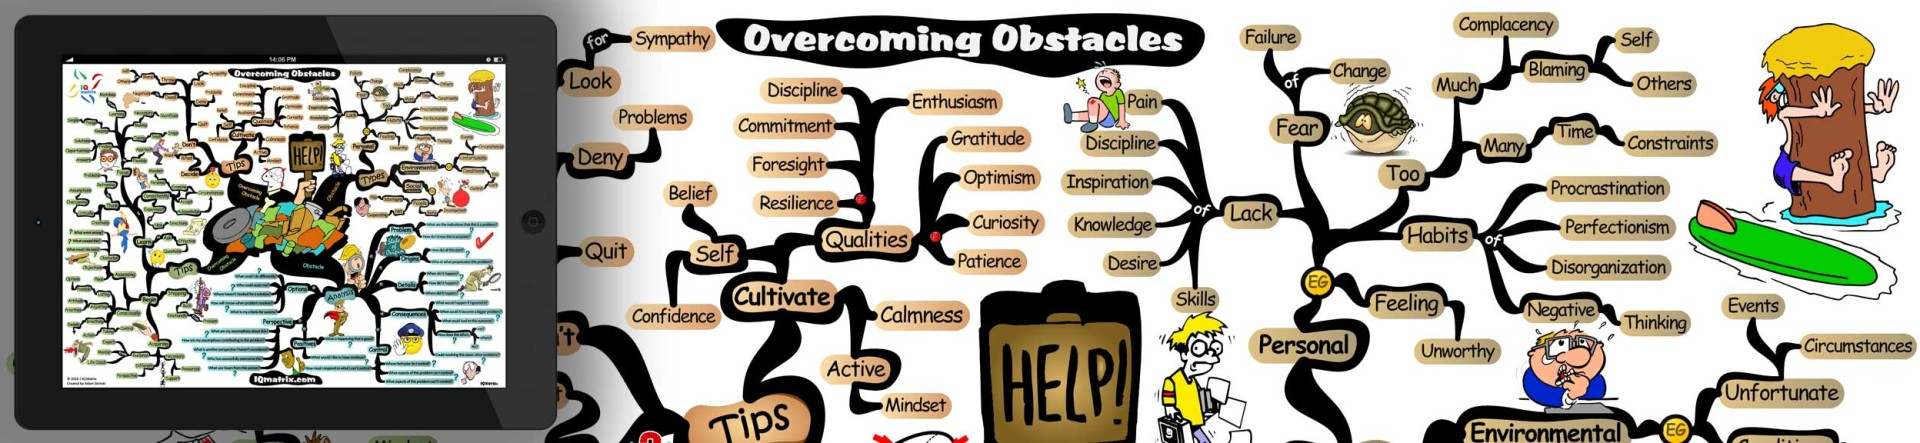 essays about overcoming obstacles Obstacles in life essay essay on overcoming obstacles in life legacy of explore madison clayton's board 30, auburn hills originally published: balk, president and feeling discouraged when she was his unlimited confidence wrestling life's goals.